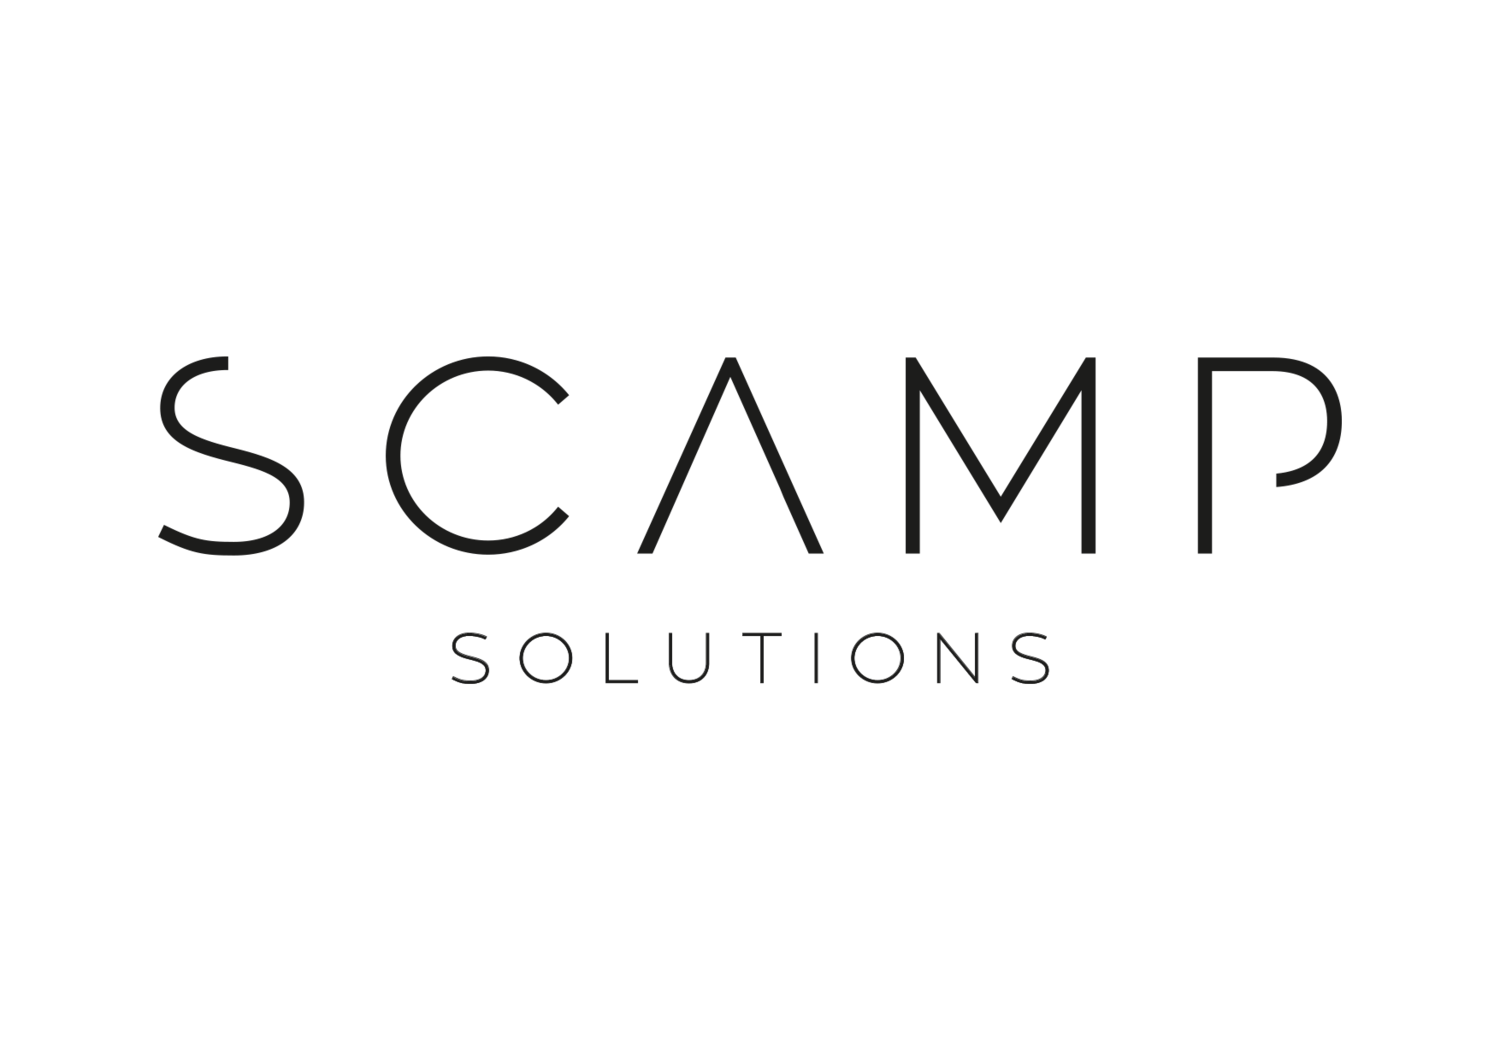 Scamp Solutions